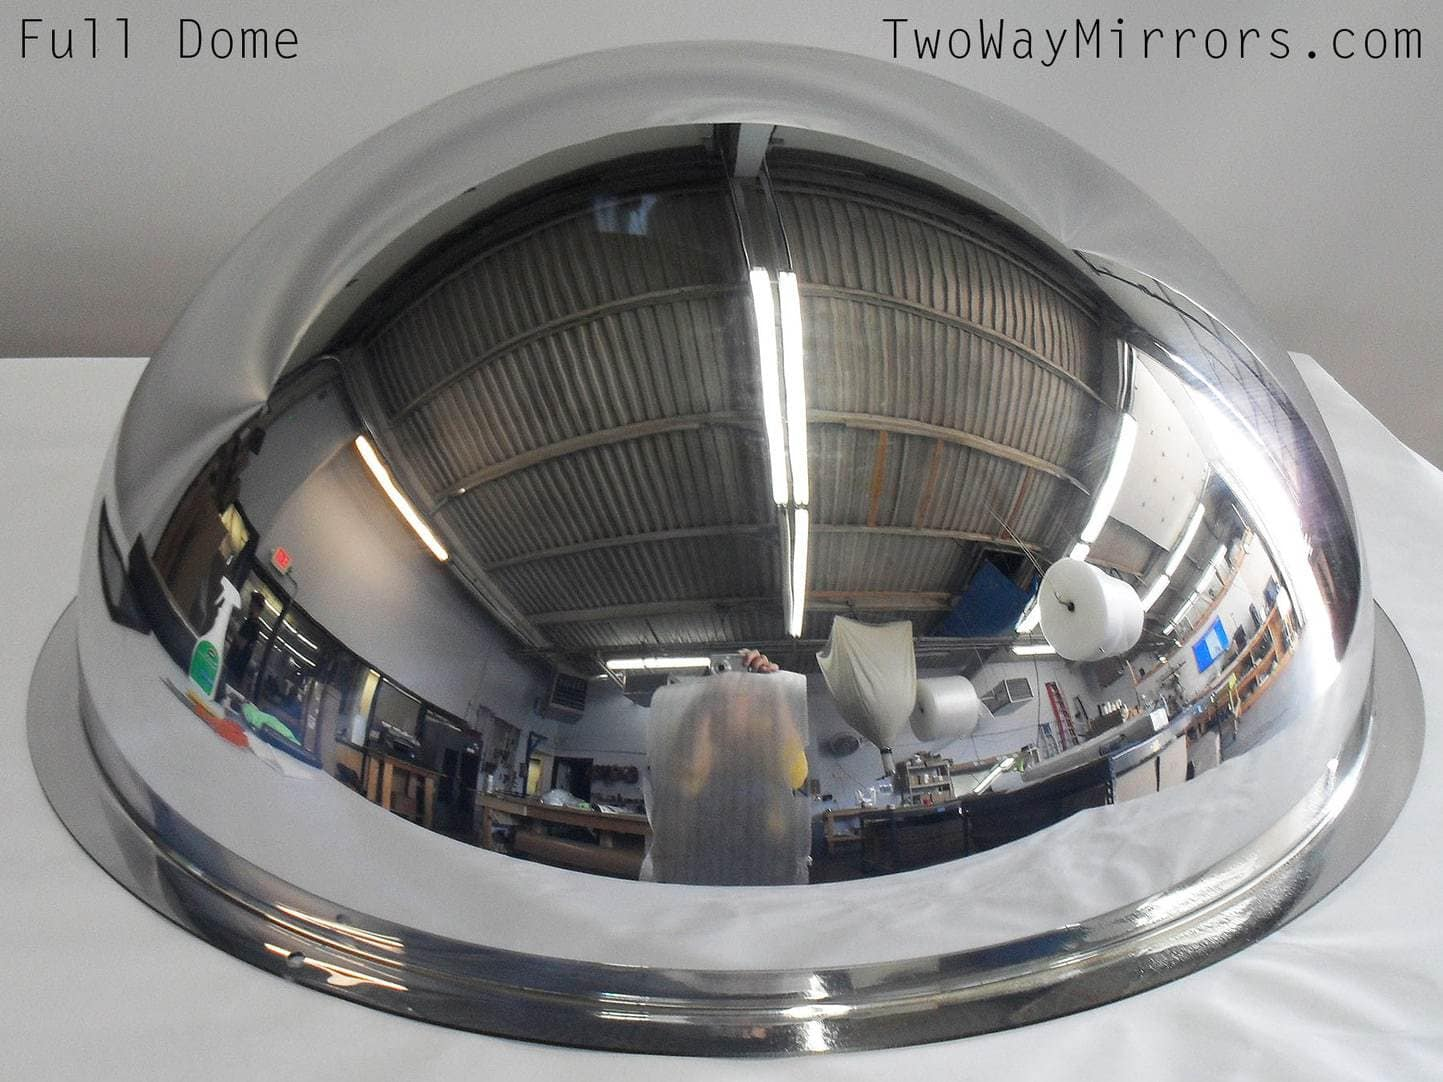 18″ Diameter Full Dome Two Way Mirror